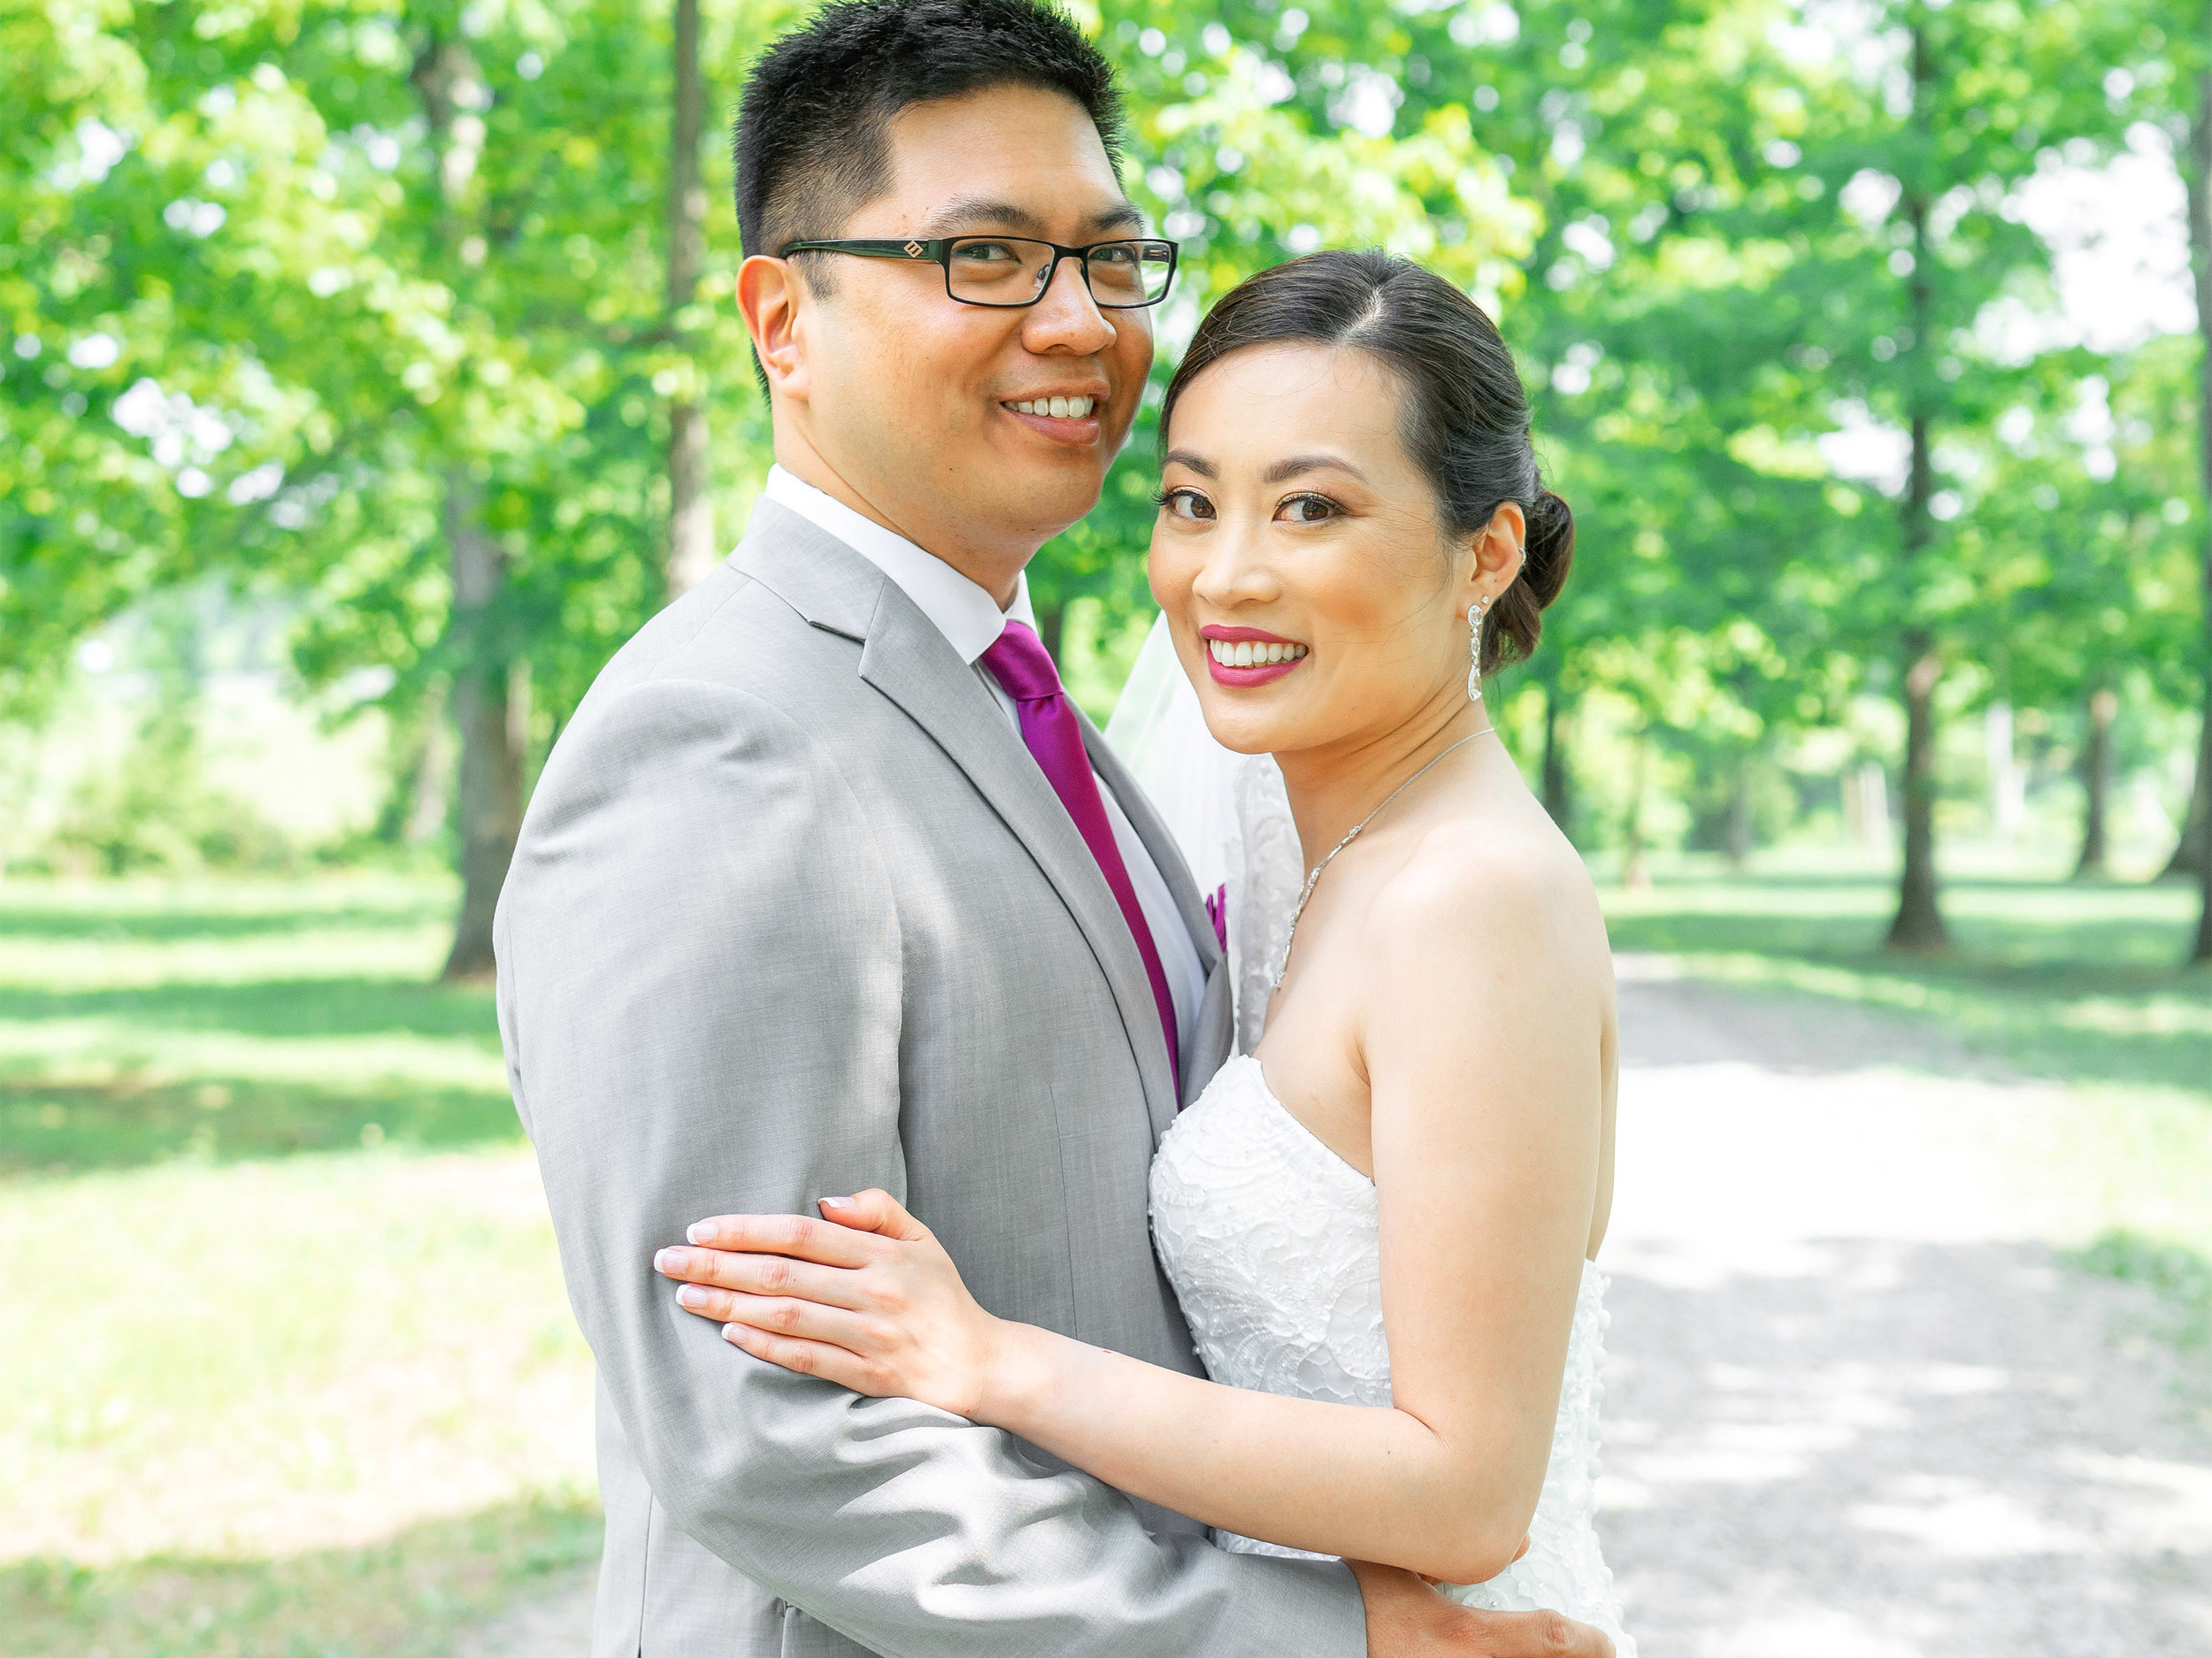 Bride and groom at Harvest House at Lost Creek gravel pathway in trees